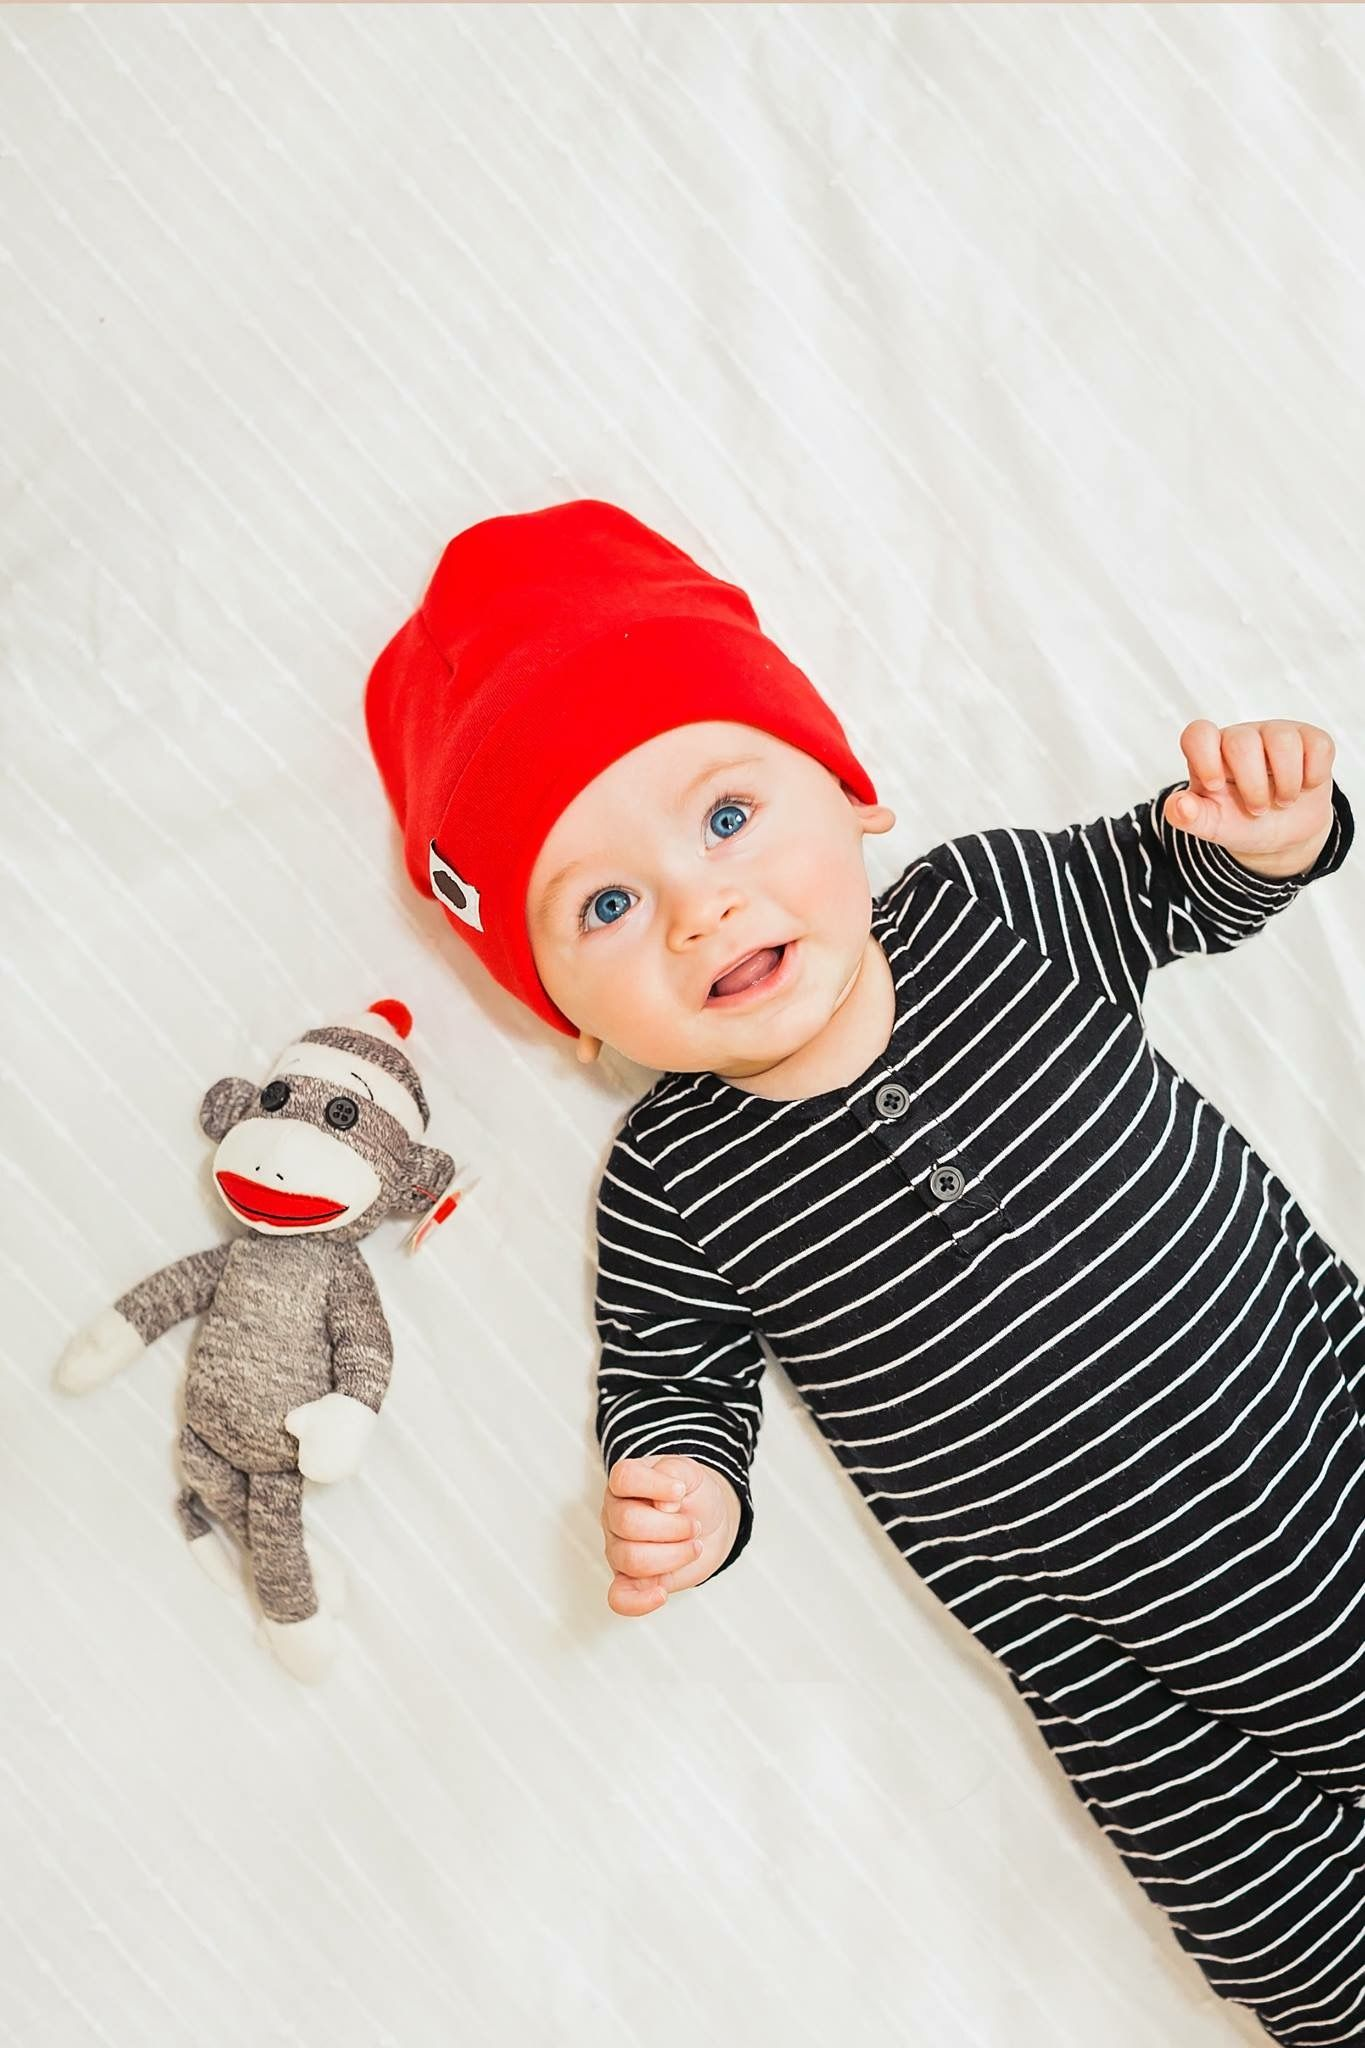 966d44327fa2 4 month old baby boy photo Baby boy outfit Baby boy photography February  2017 - Finley Scott